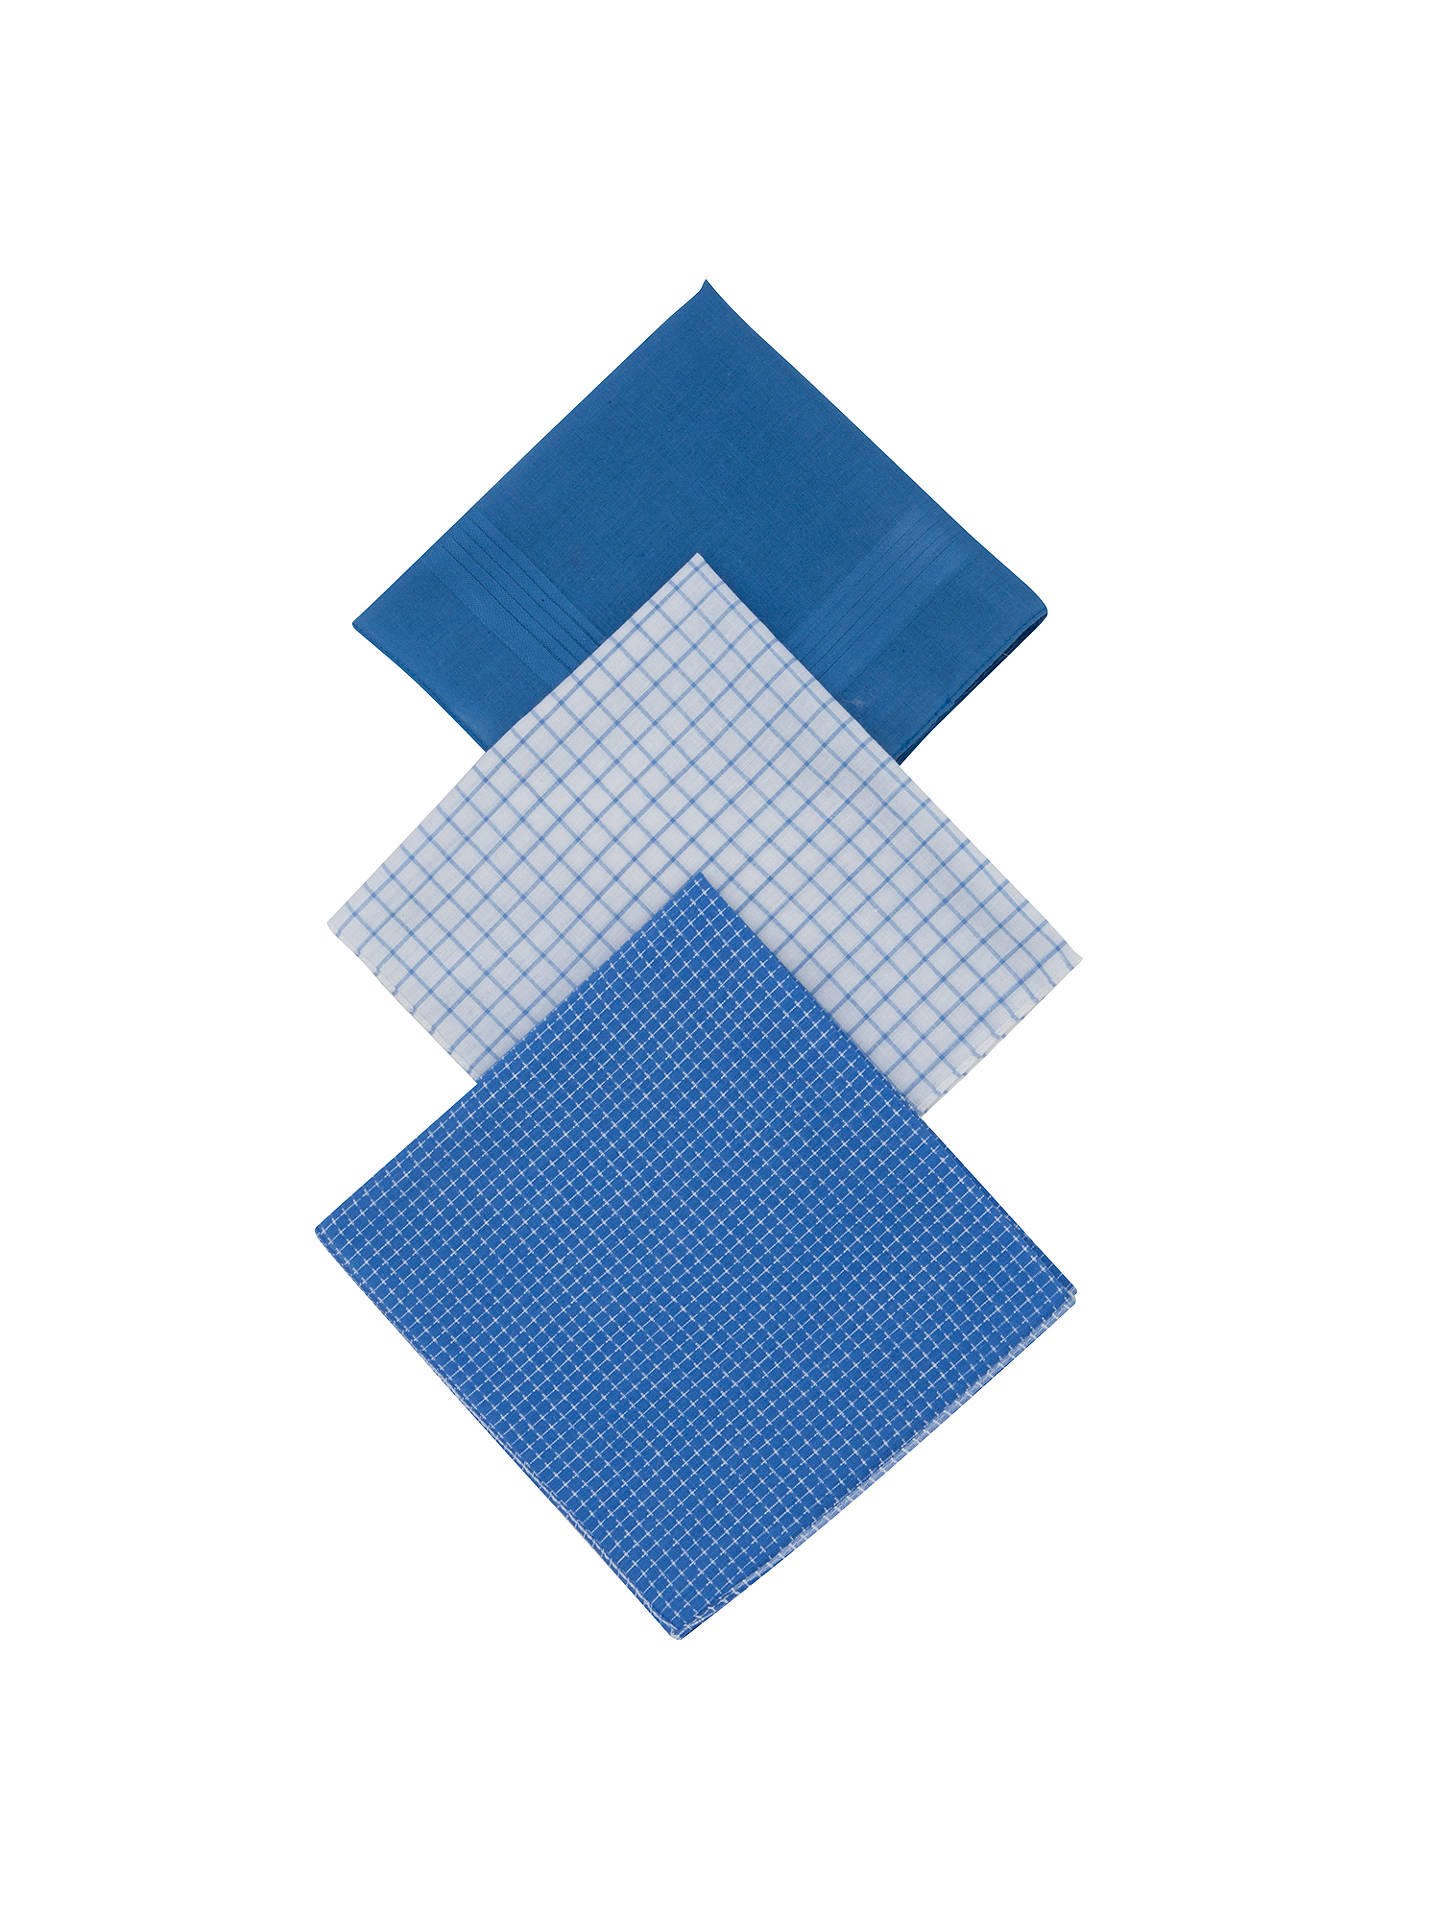 BuyJohn Lewis & Partners Designer Handkerchiefs, Pack of 3, Blue Online at johnlewis.com